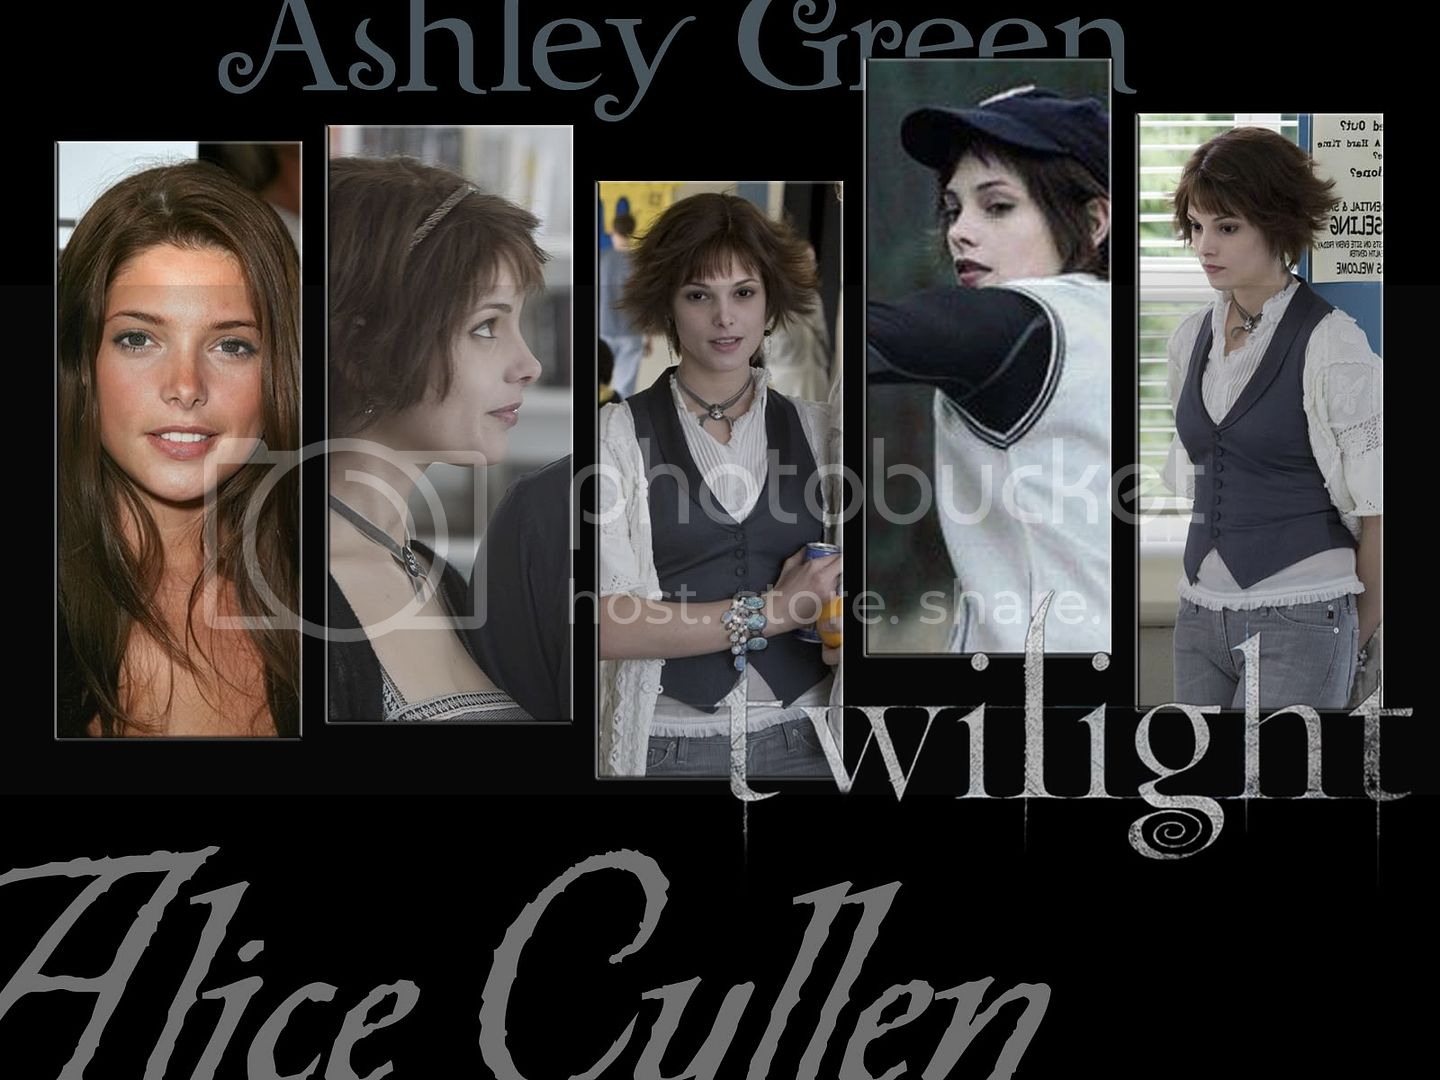 Alice Cullen Pictures, Images and Photos